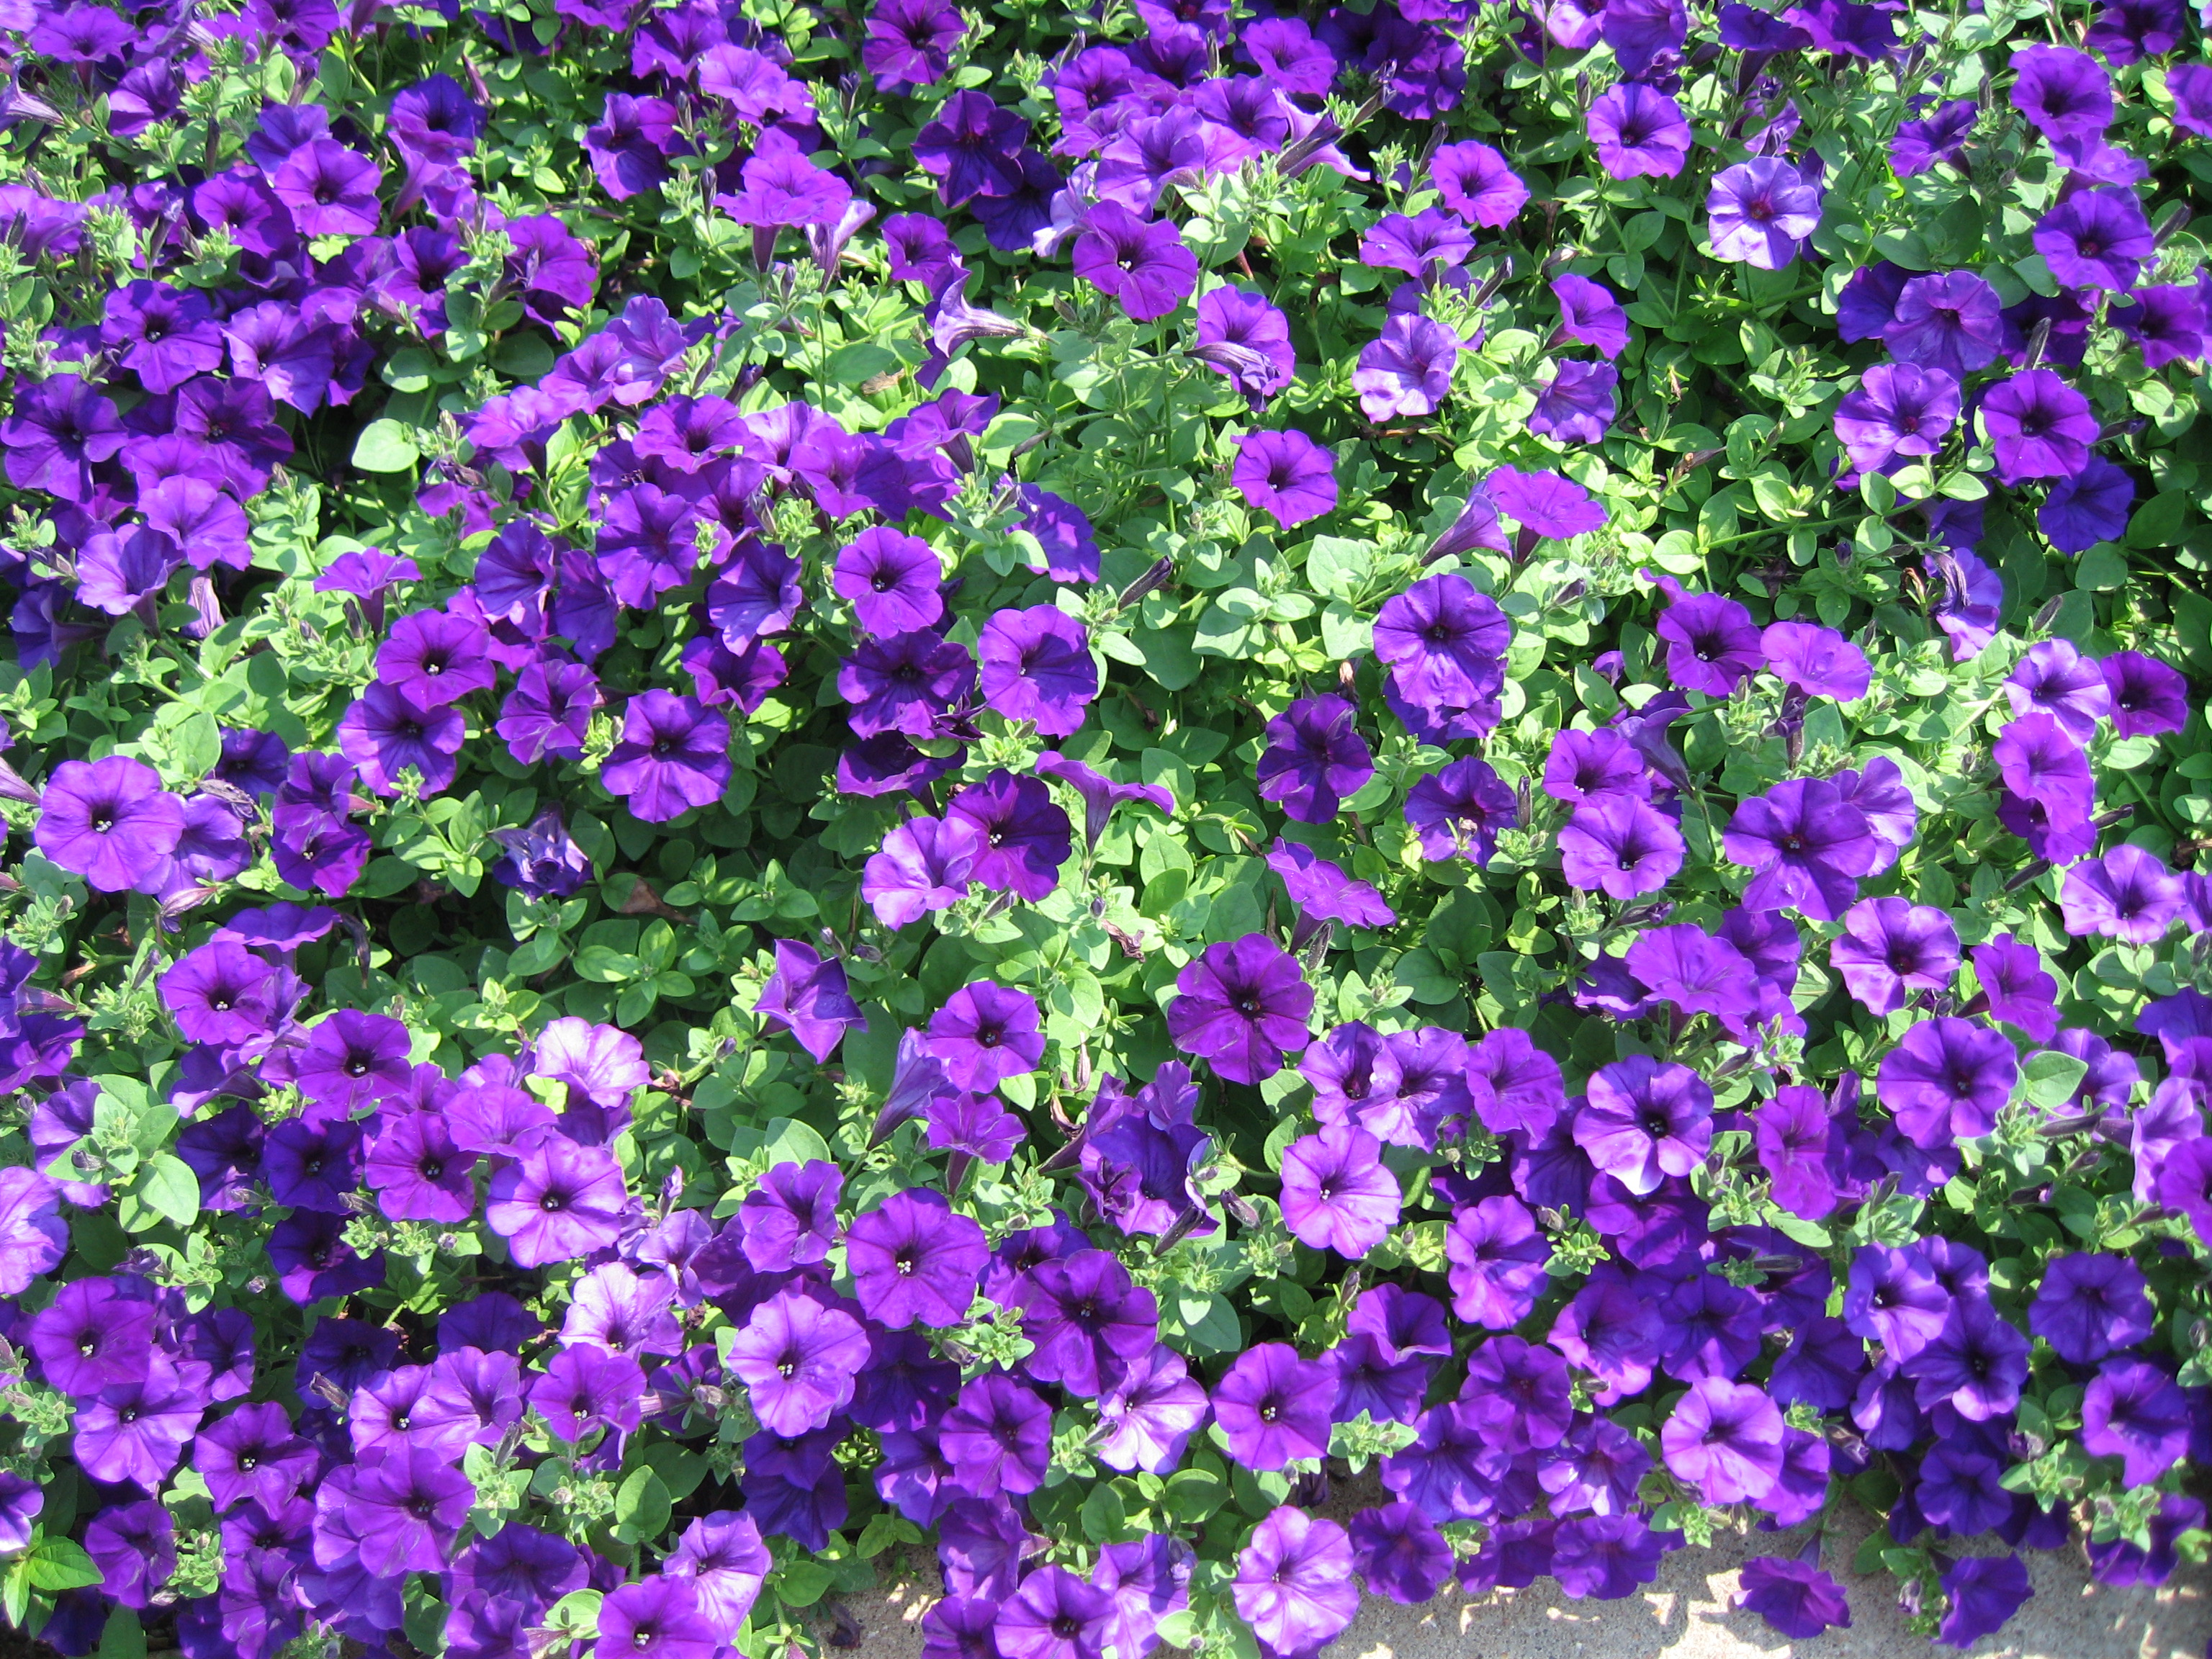 st-louis-botanical-gardens-purple-passio